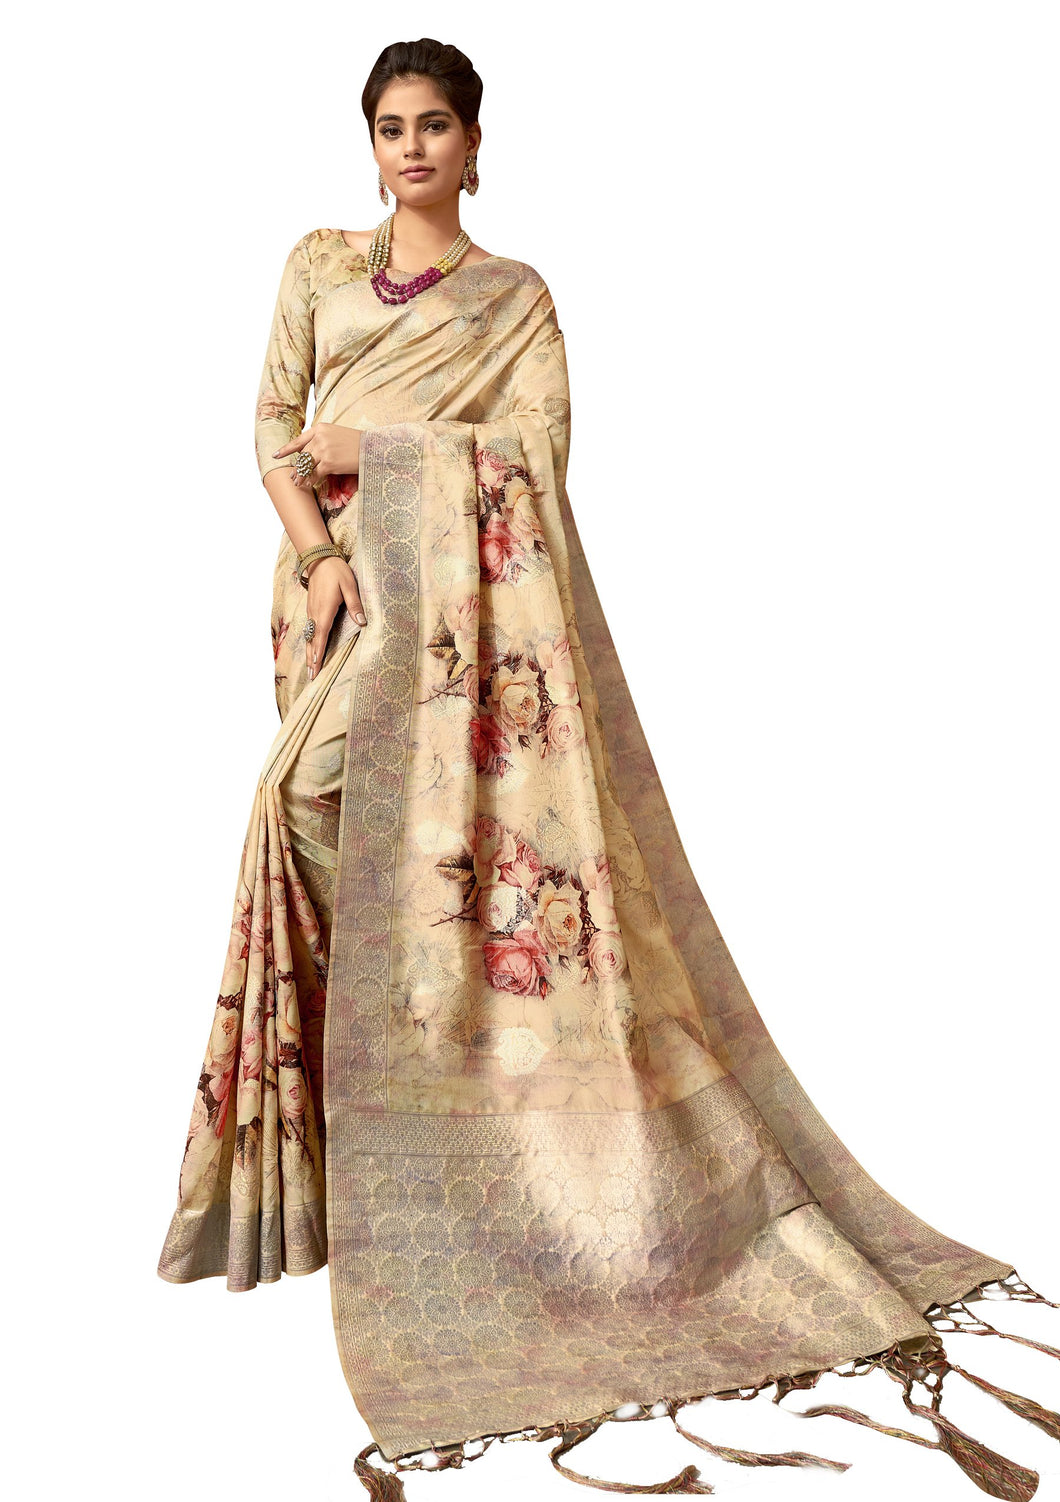 Beige Digital Printed Banarsi Silk Weaven Saree T34 - Ethnic's By Anvi Creations